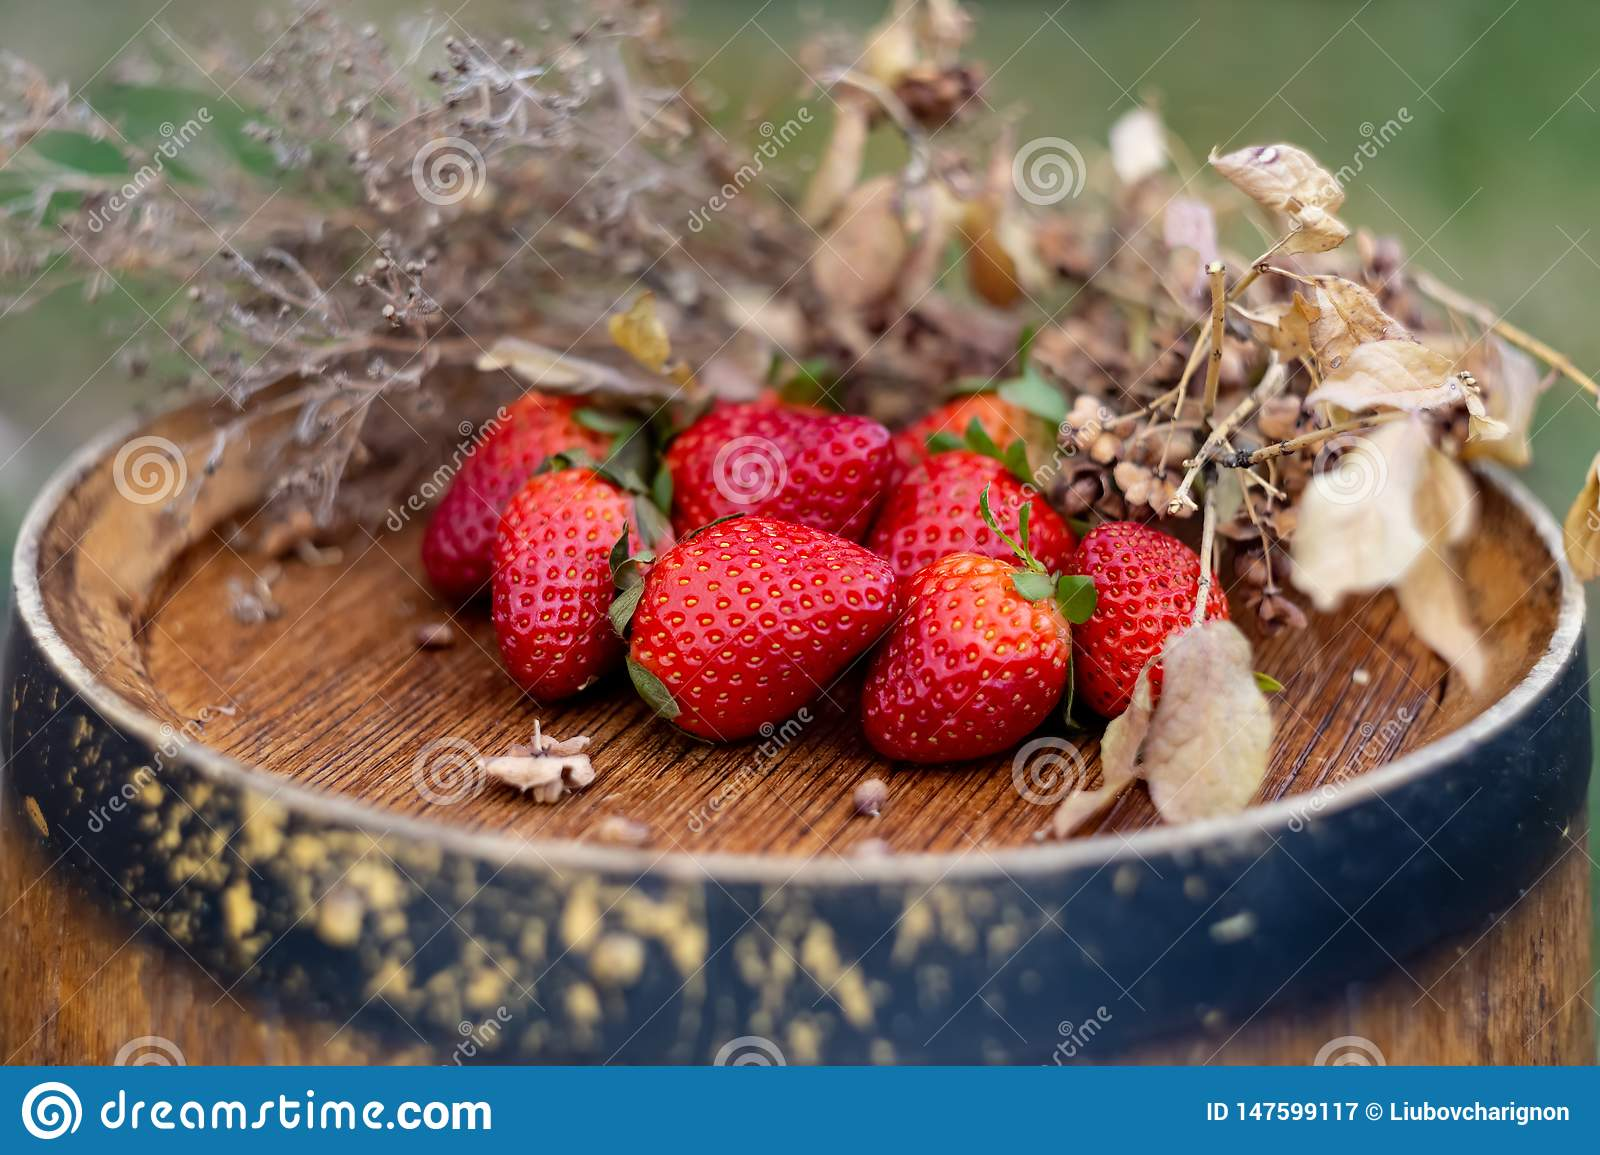 Red fruits or berries and dry grass on a wooden surface in the garden